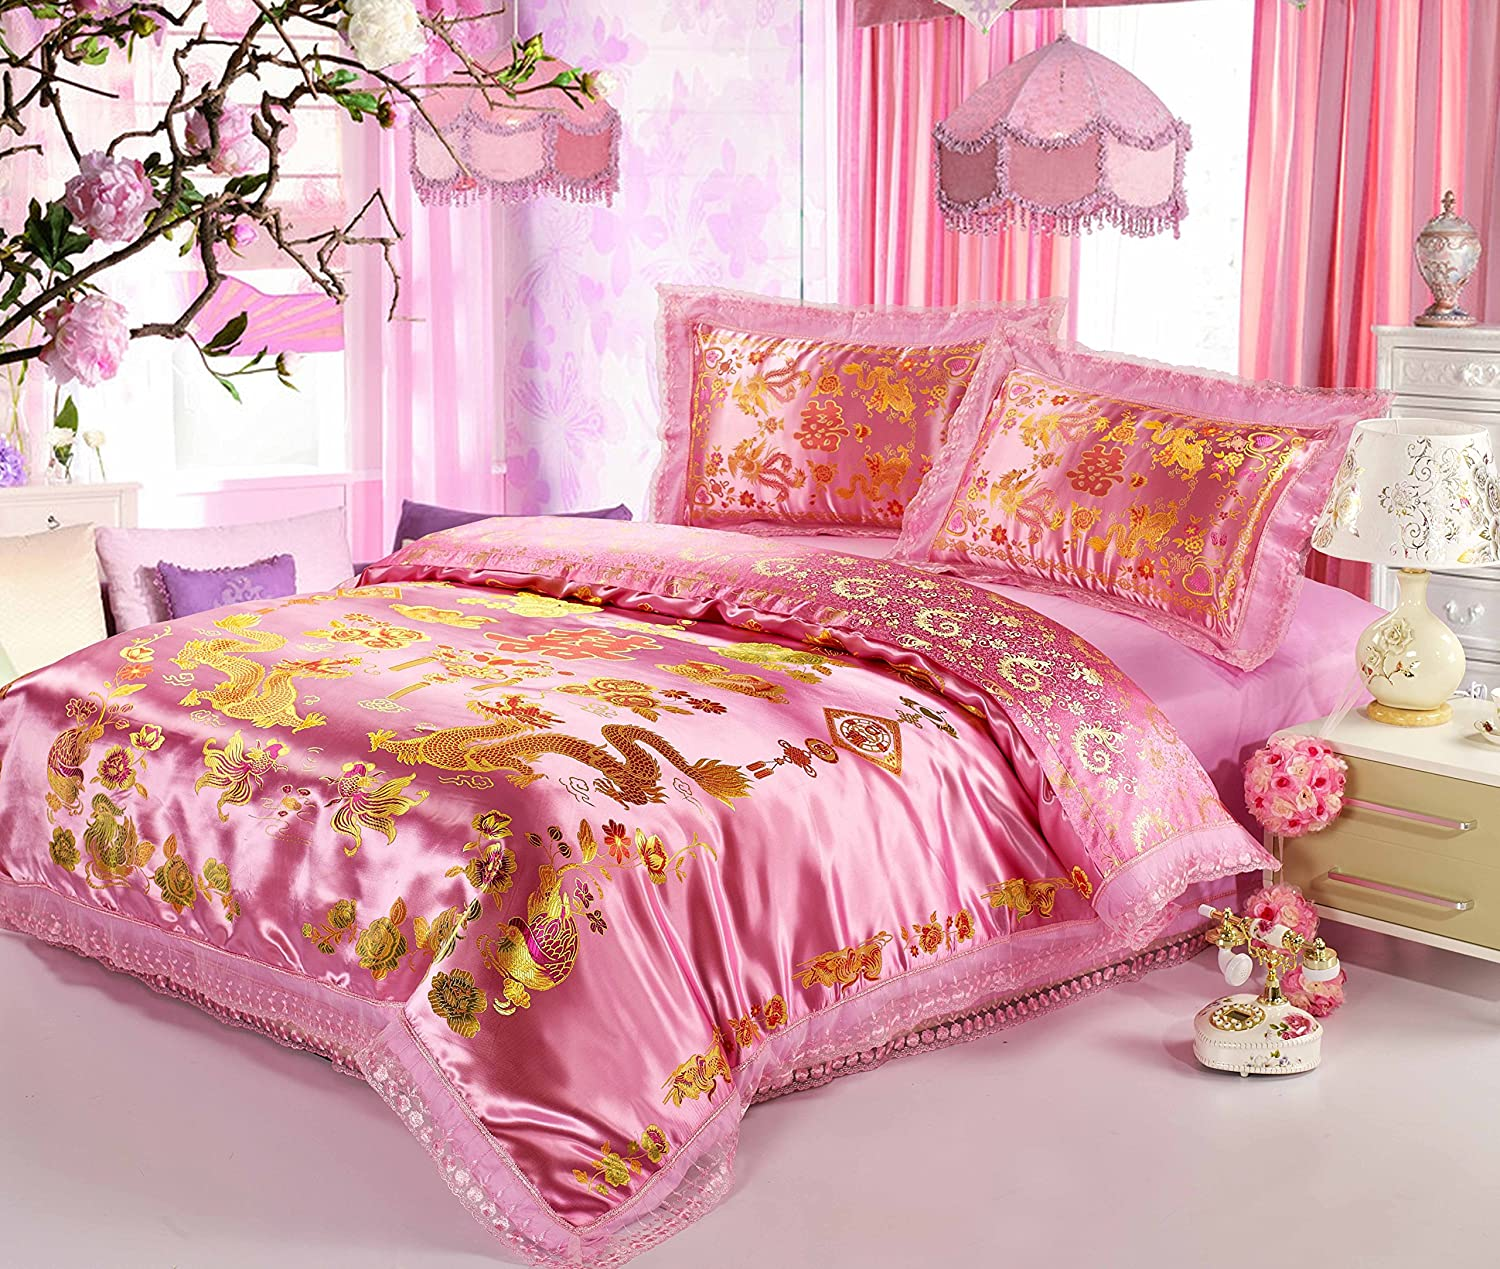 Cliab Chinese Traditional Bedding Asian Bedding Queen with Dragon and Phoenix Bird Embroidery Duvet Cover Set 4pcs